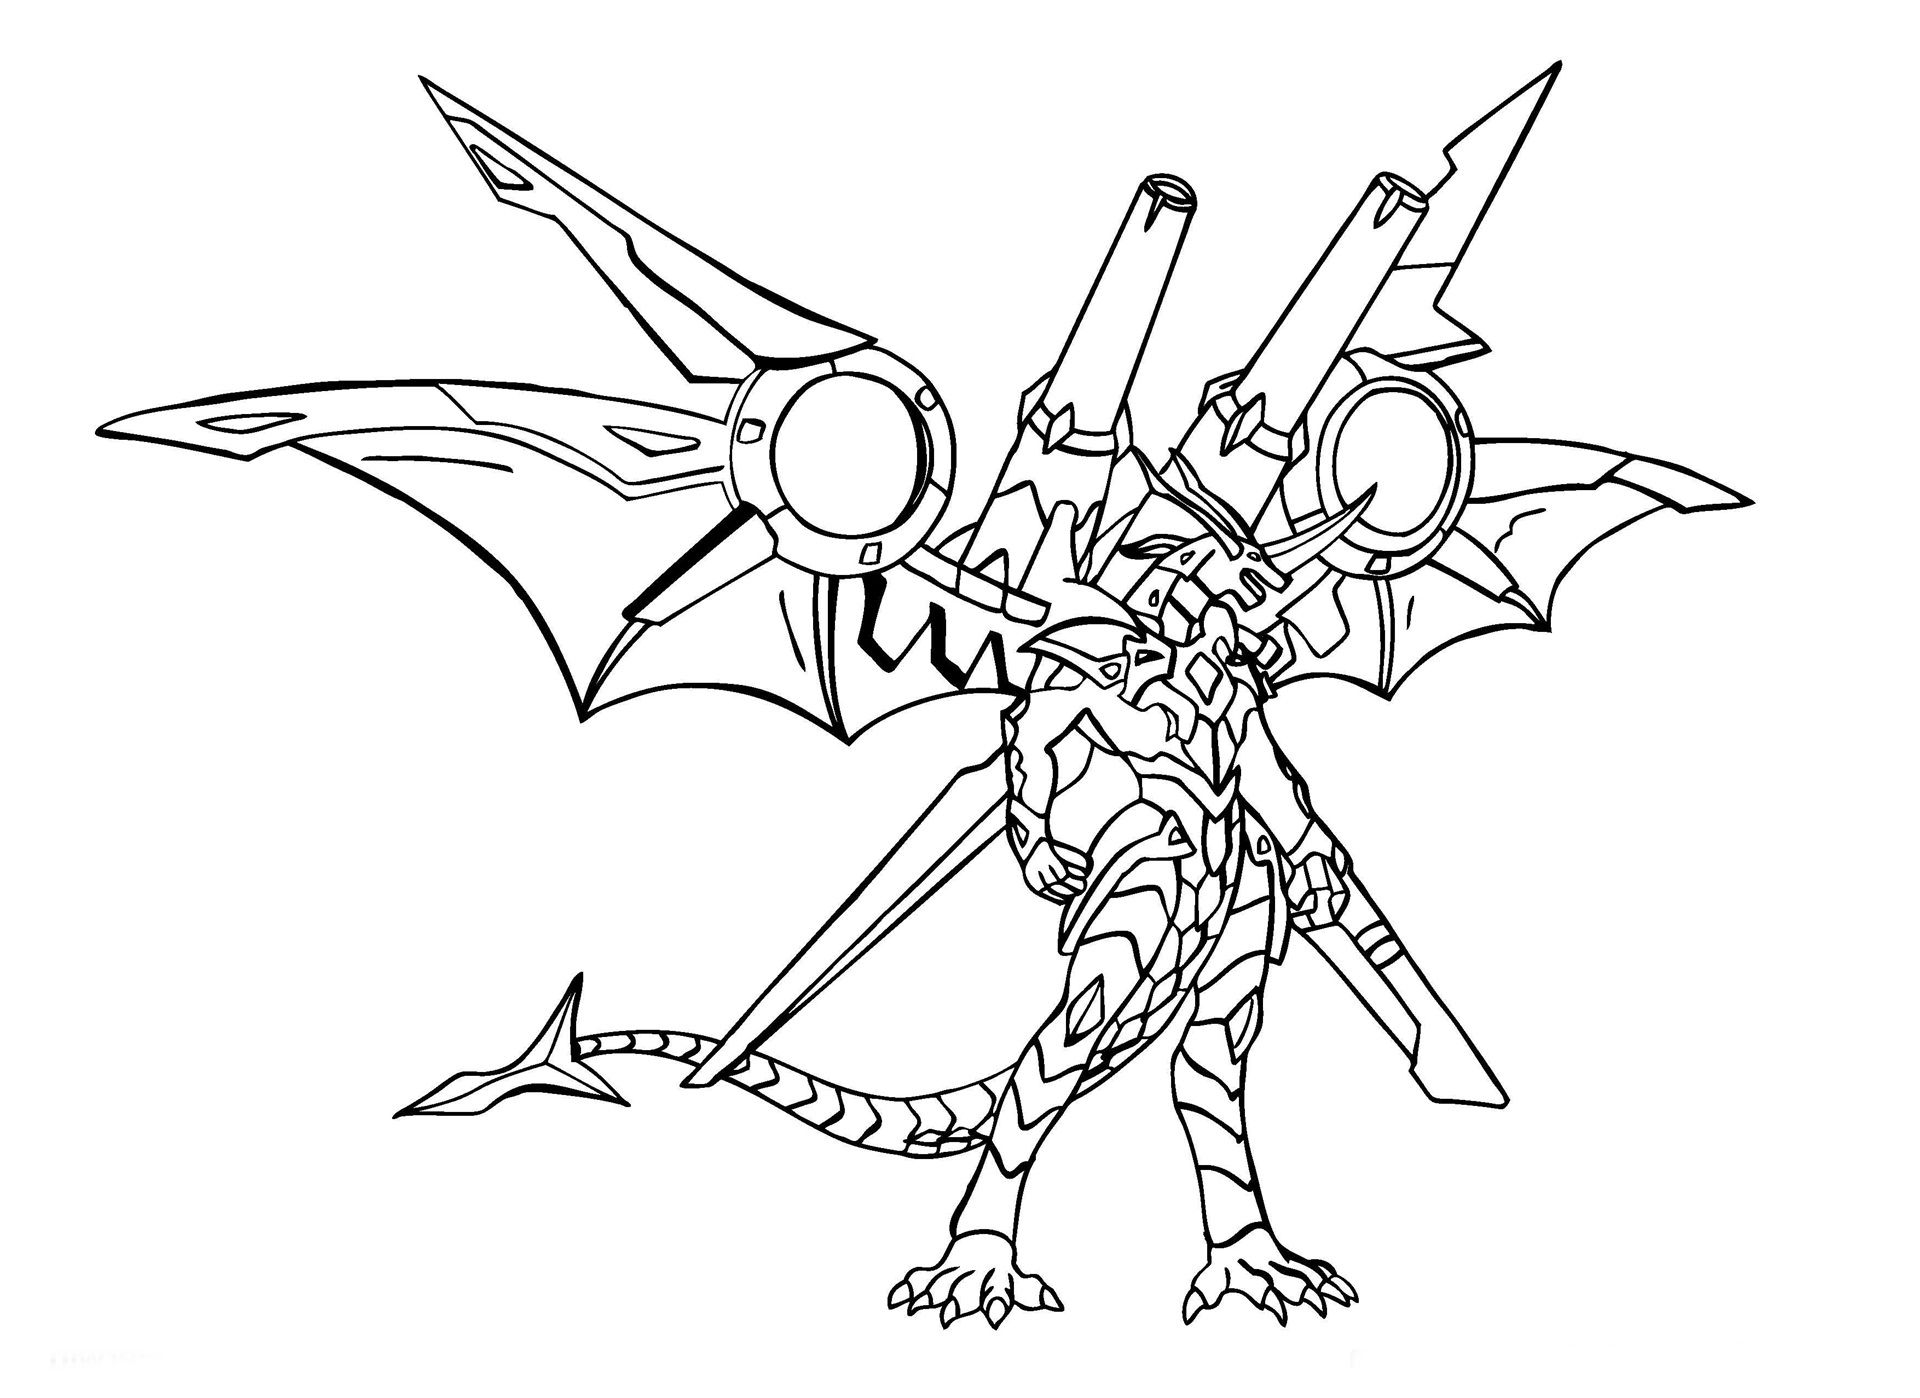 bakugan coloring sheet free printable bakugan coloring pages for kids bakugan coloring sheet